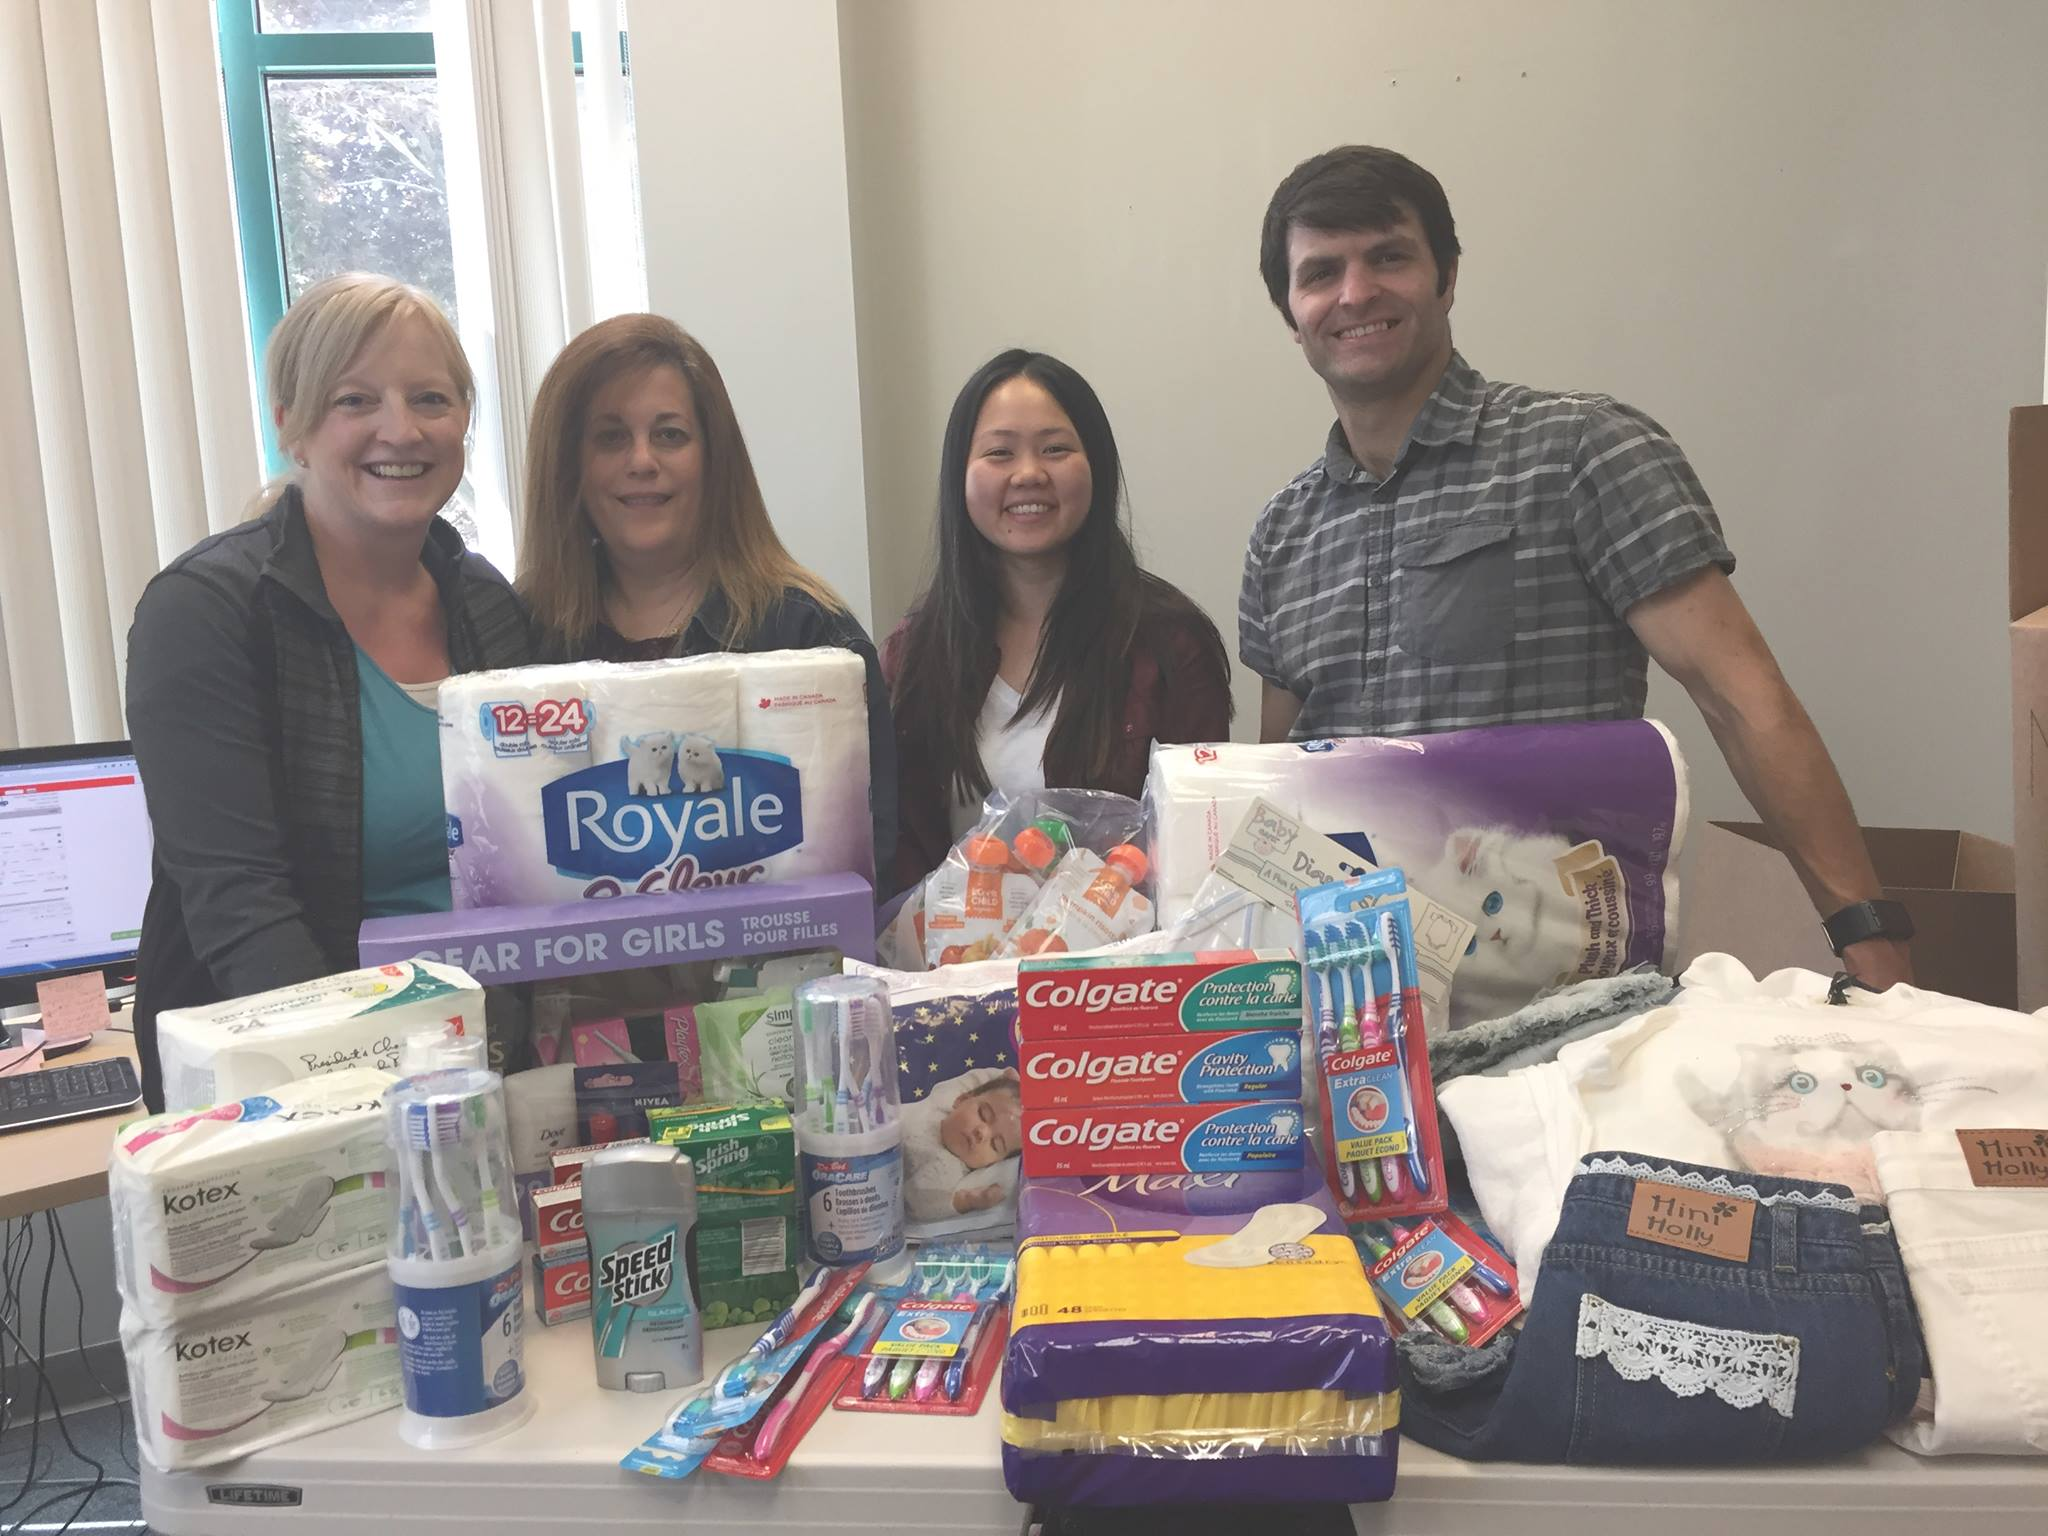 Staff in front of table with donated products